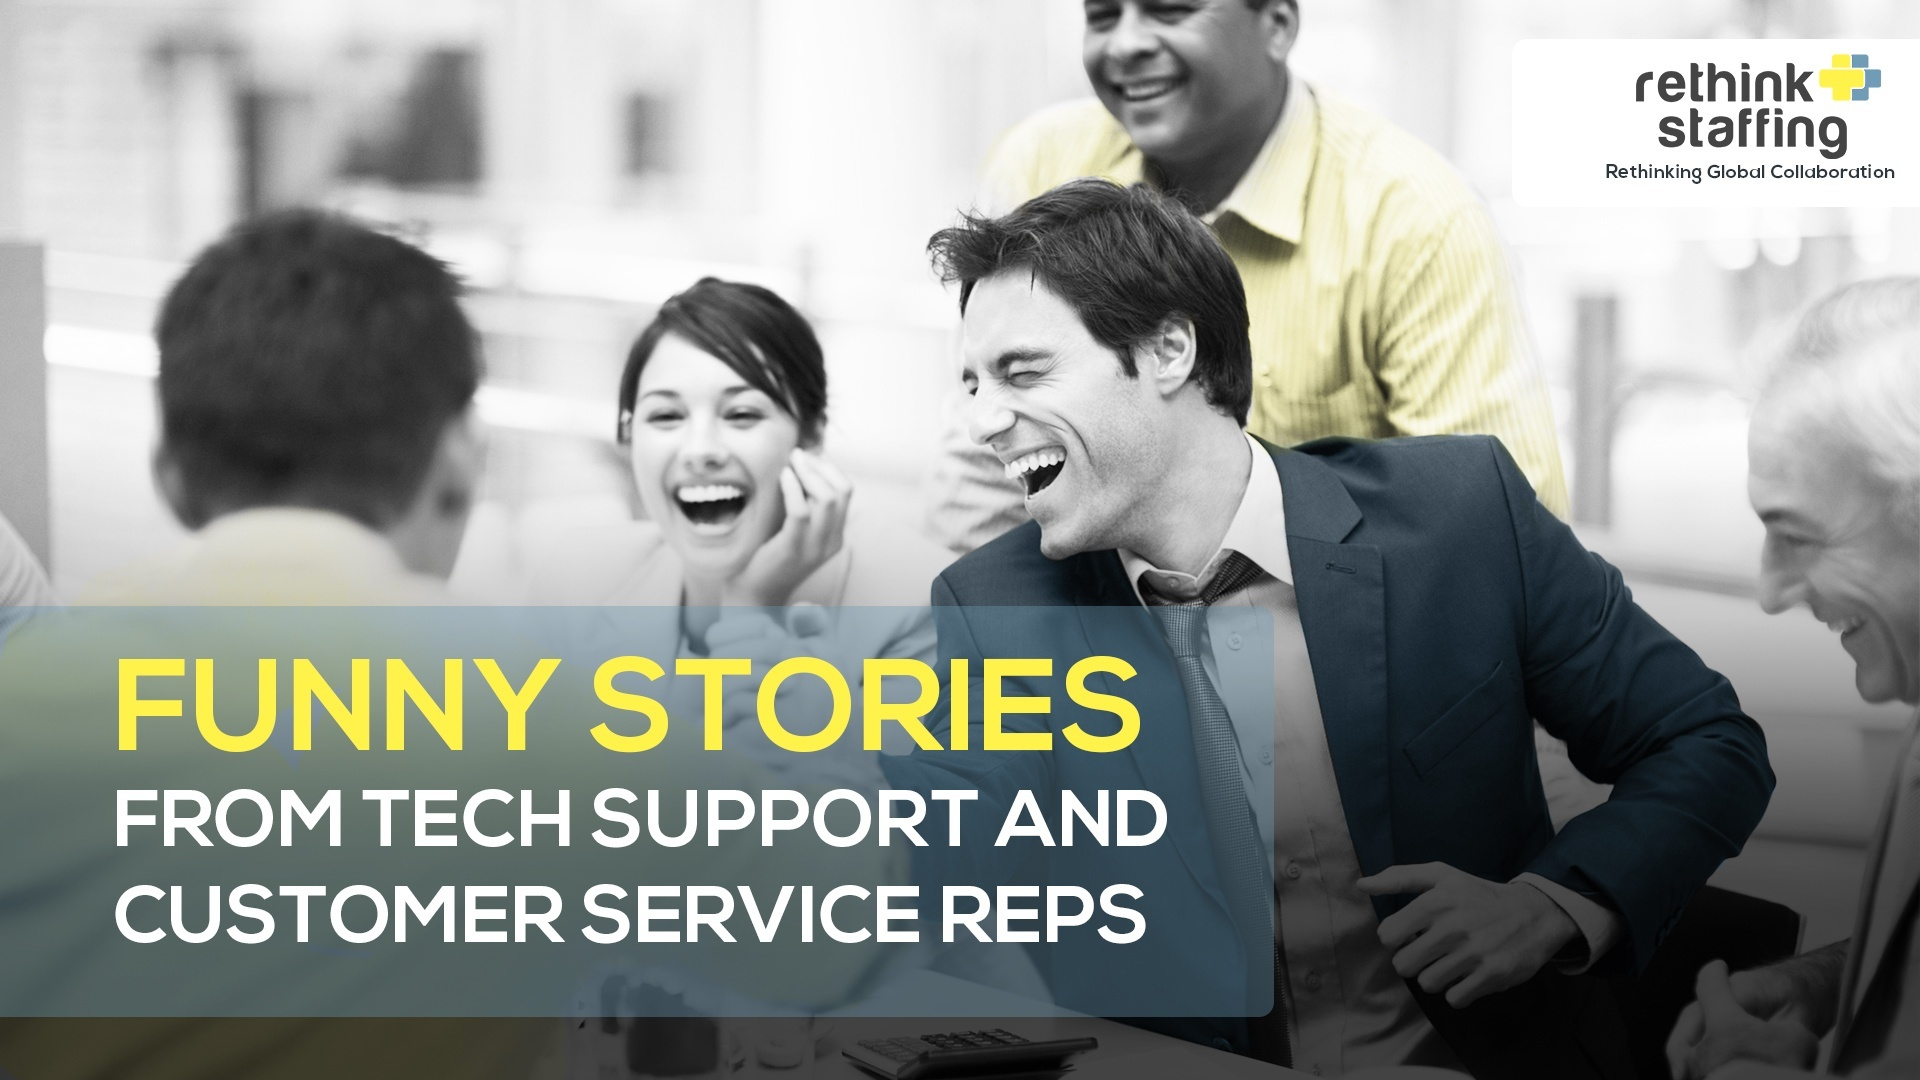 Funny Stories from Tech Support and Customer Service Reps